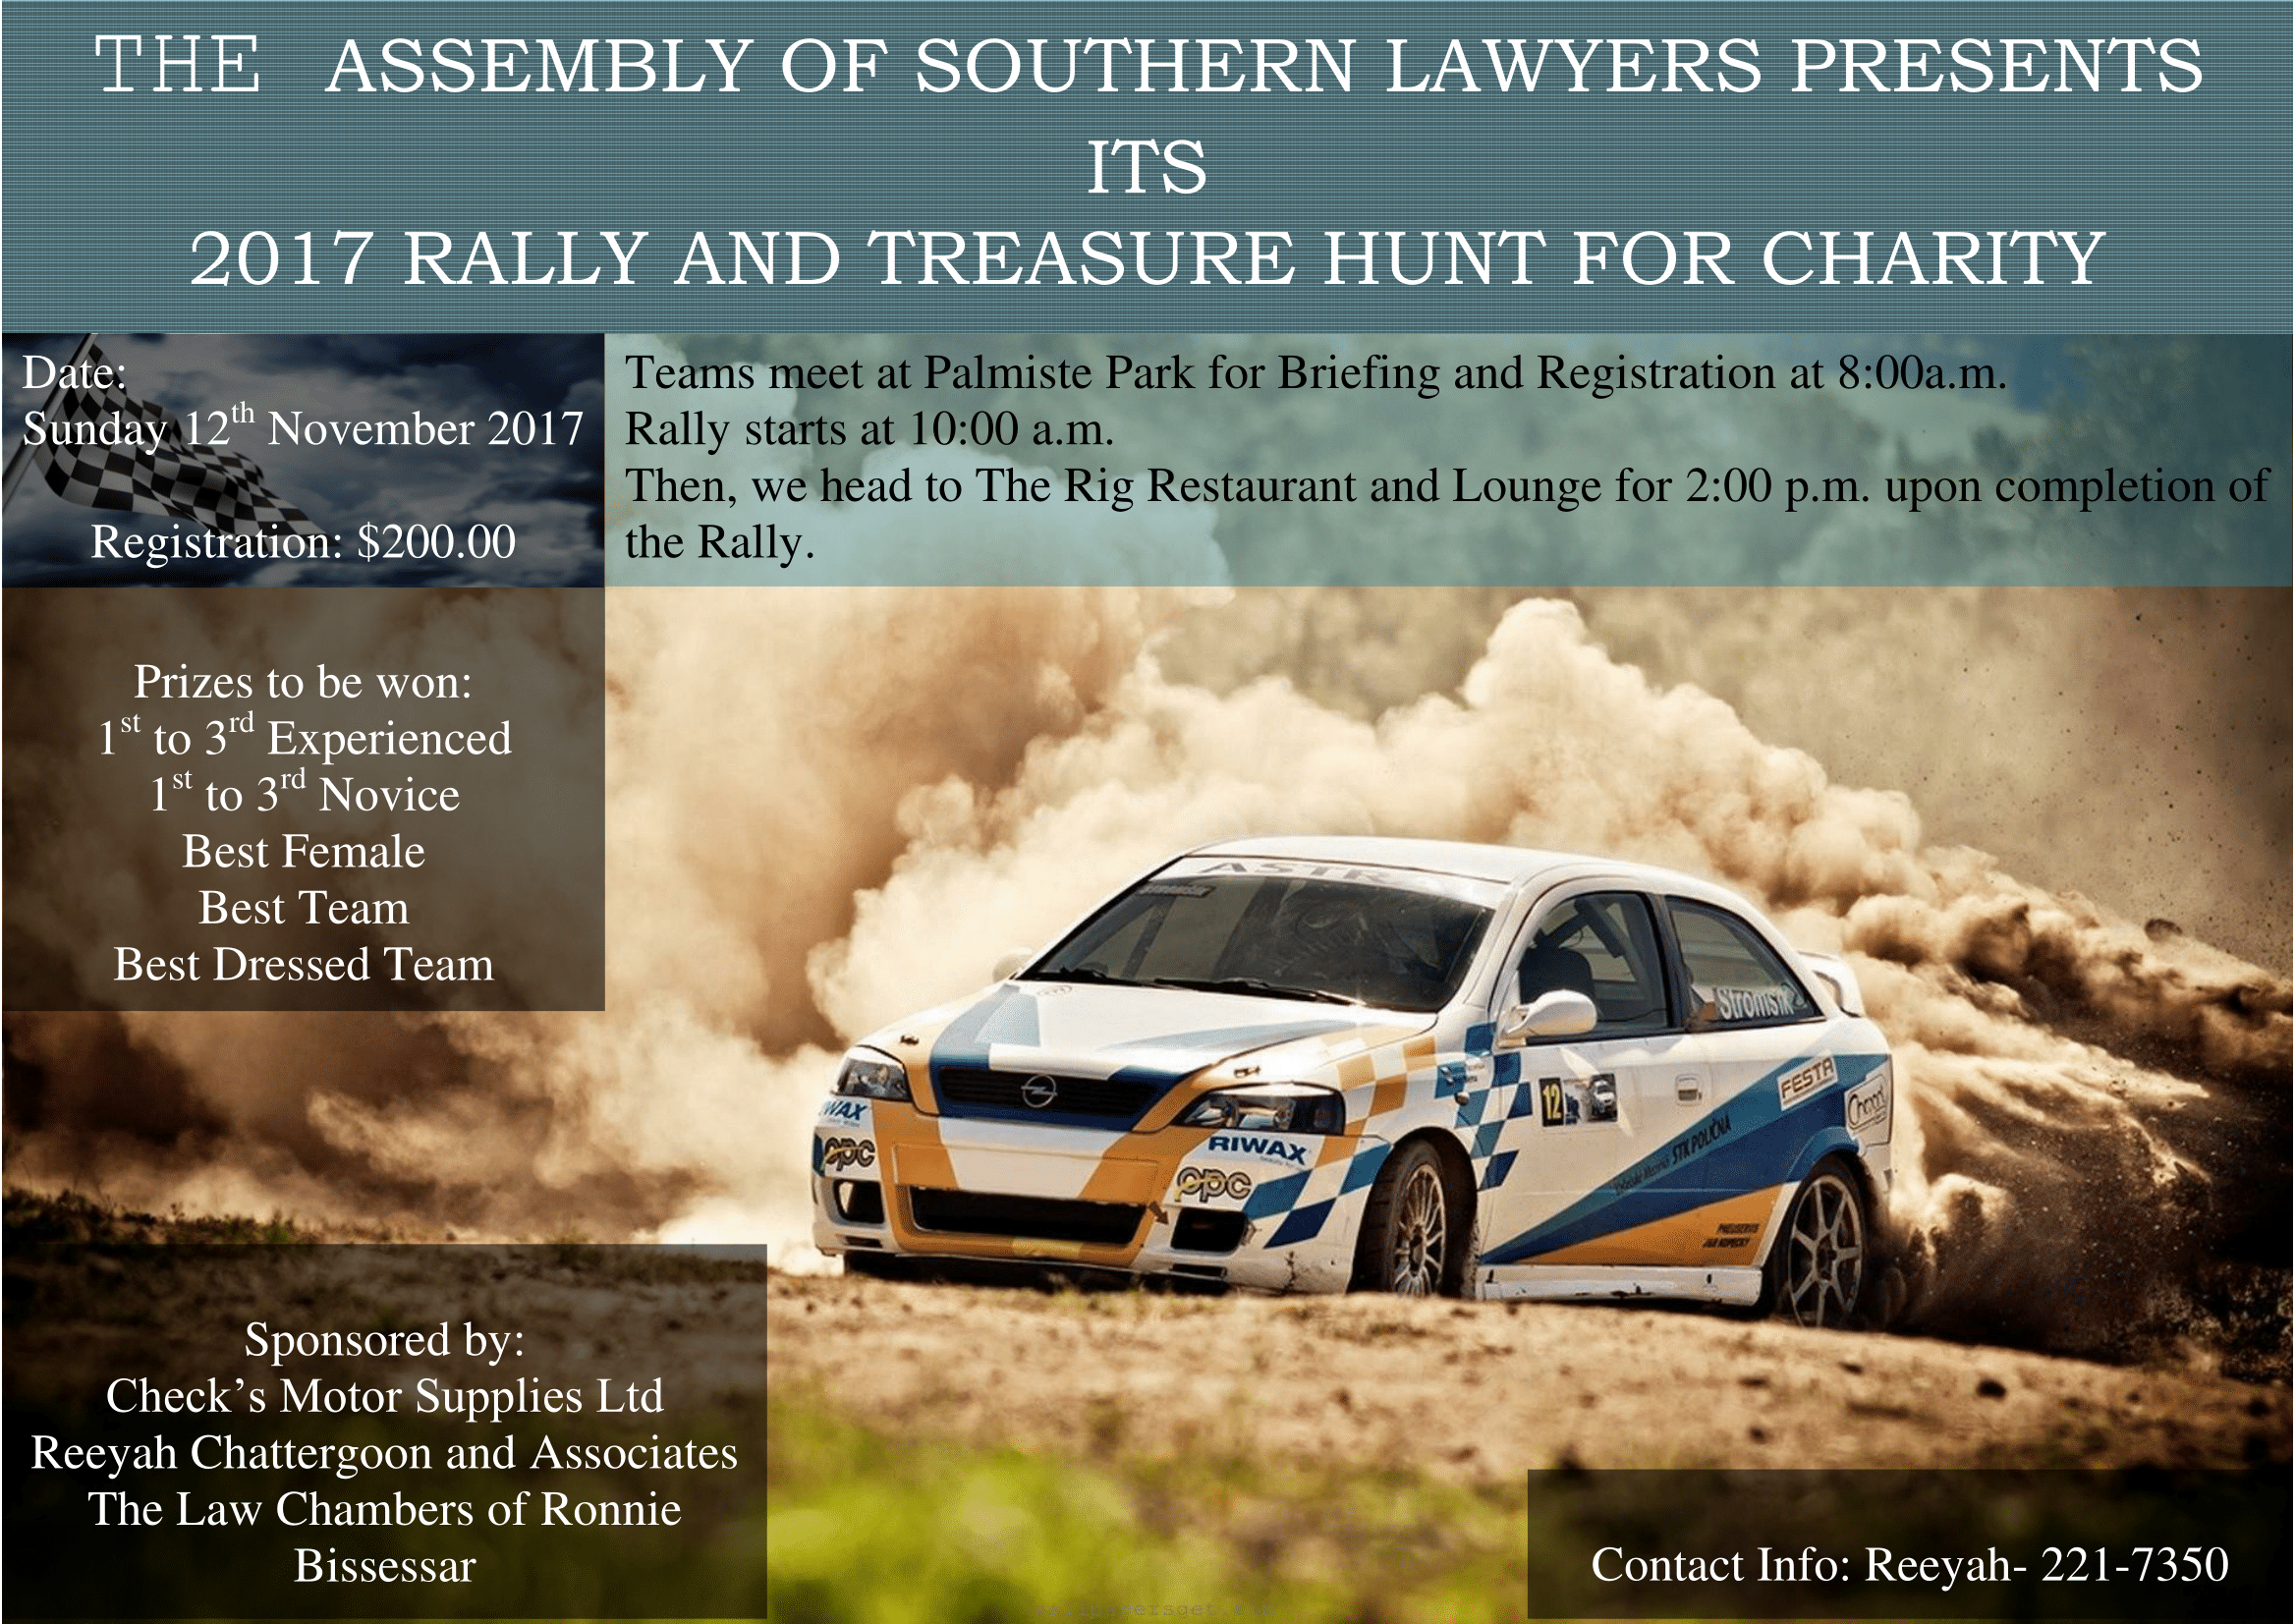 the assembly of southern lawyers 2017 rally and treasure hunt